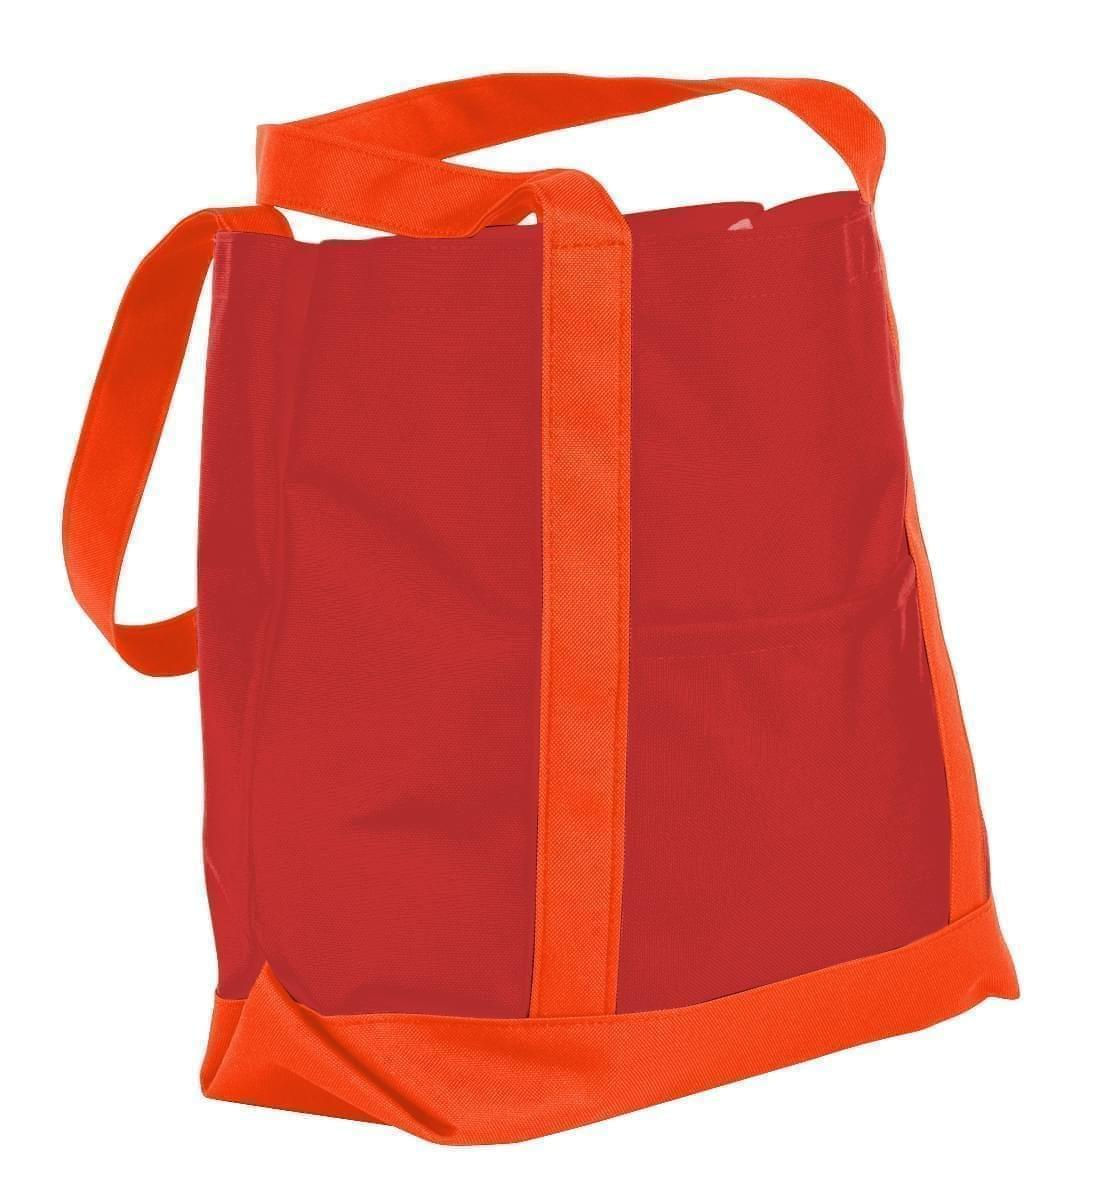 USA Made Canvas Fashion Tote Bags, Red-Orange, XAACL1UAEJ